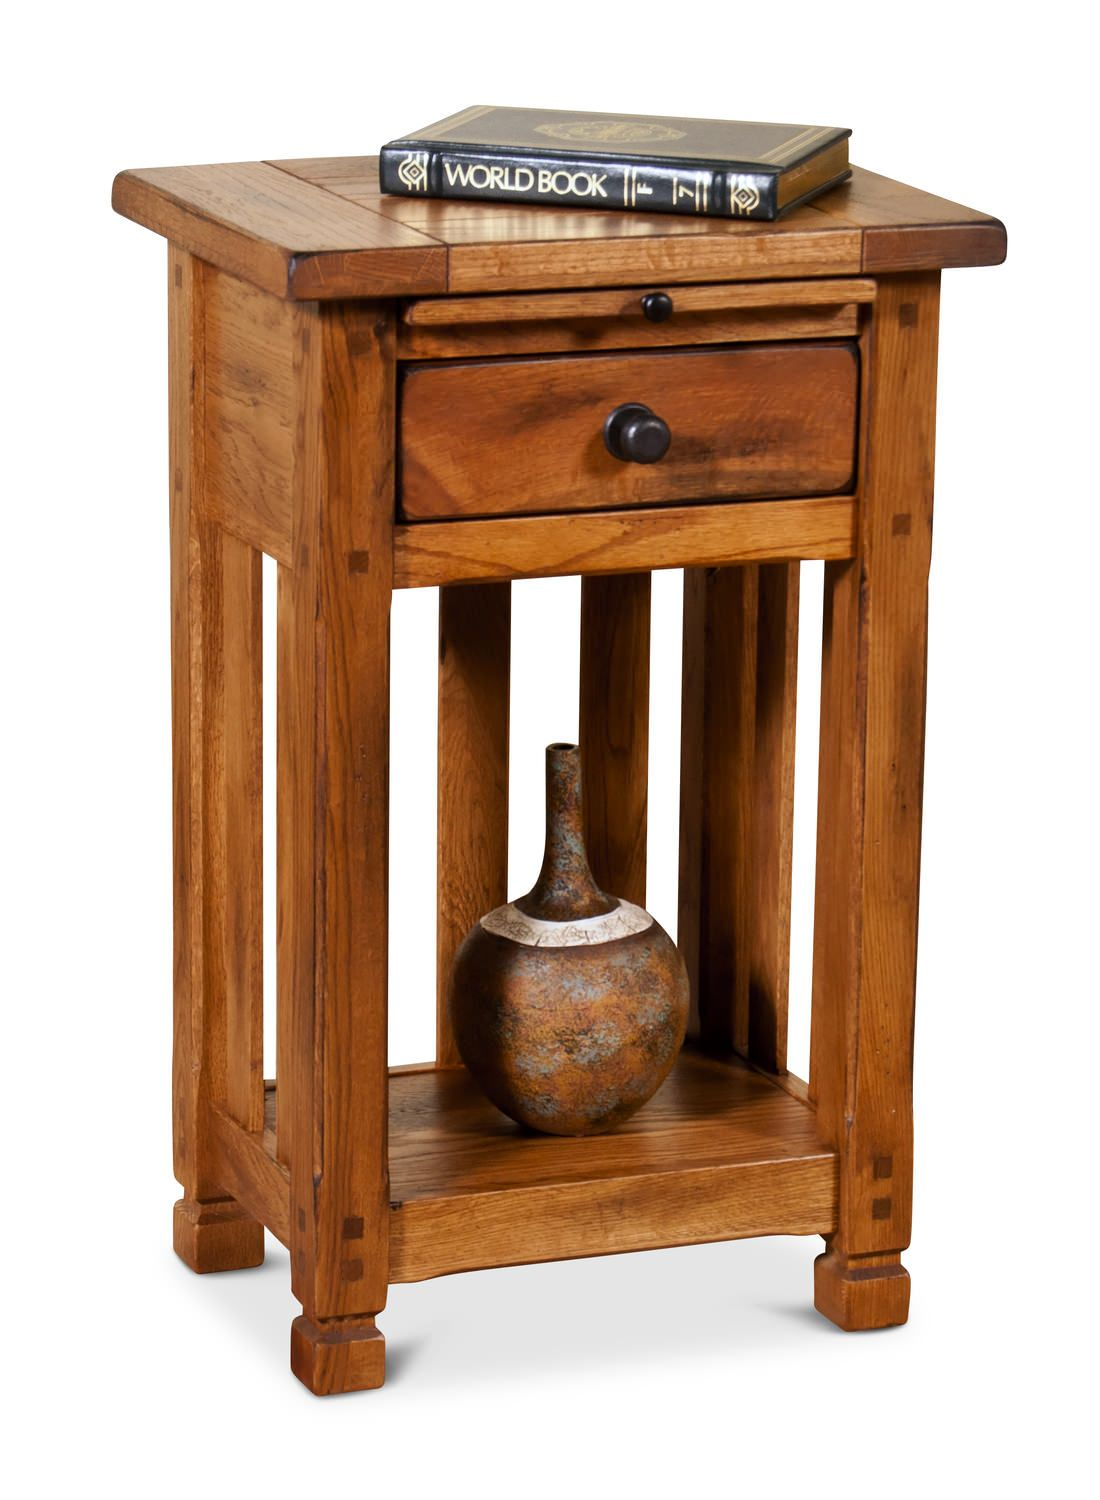 sedona phone stand for the home furniture accent table kitchen bench ikea entrance ideas oak dining living room sets custom trestle corner television winsome wood end tyndall